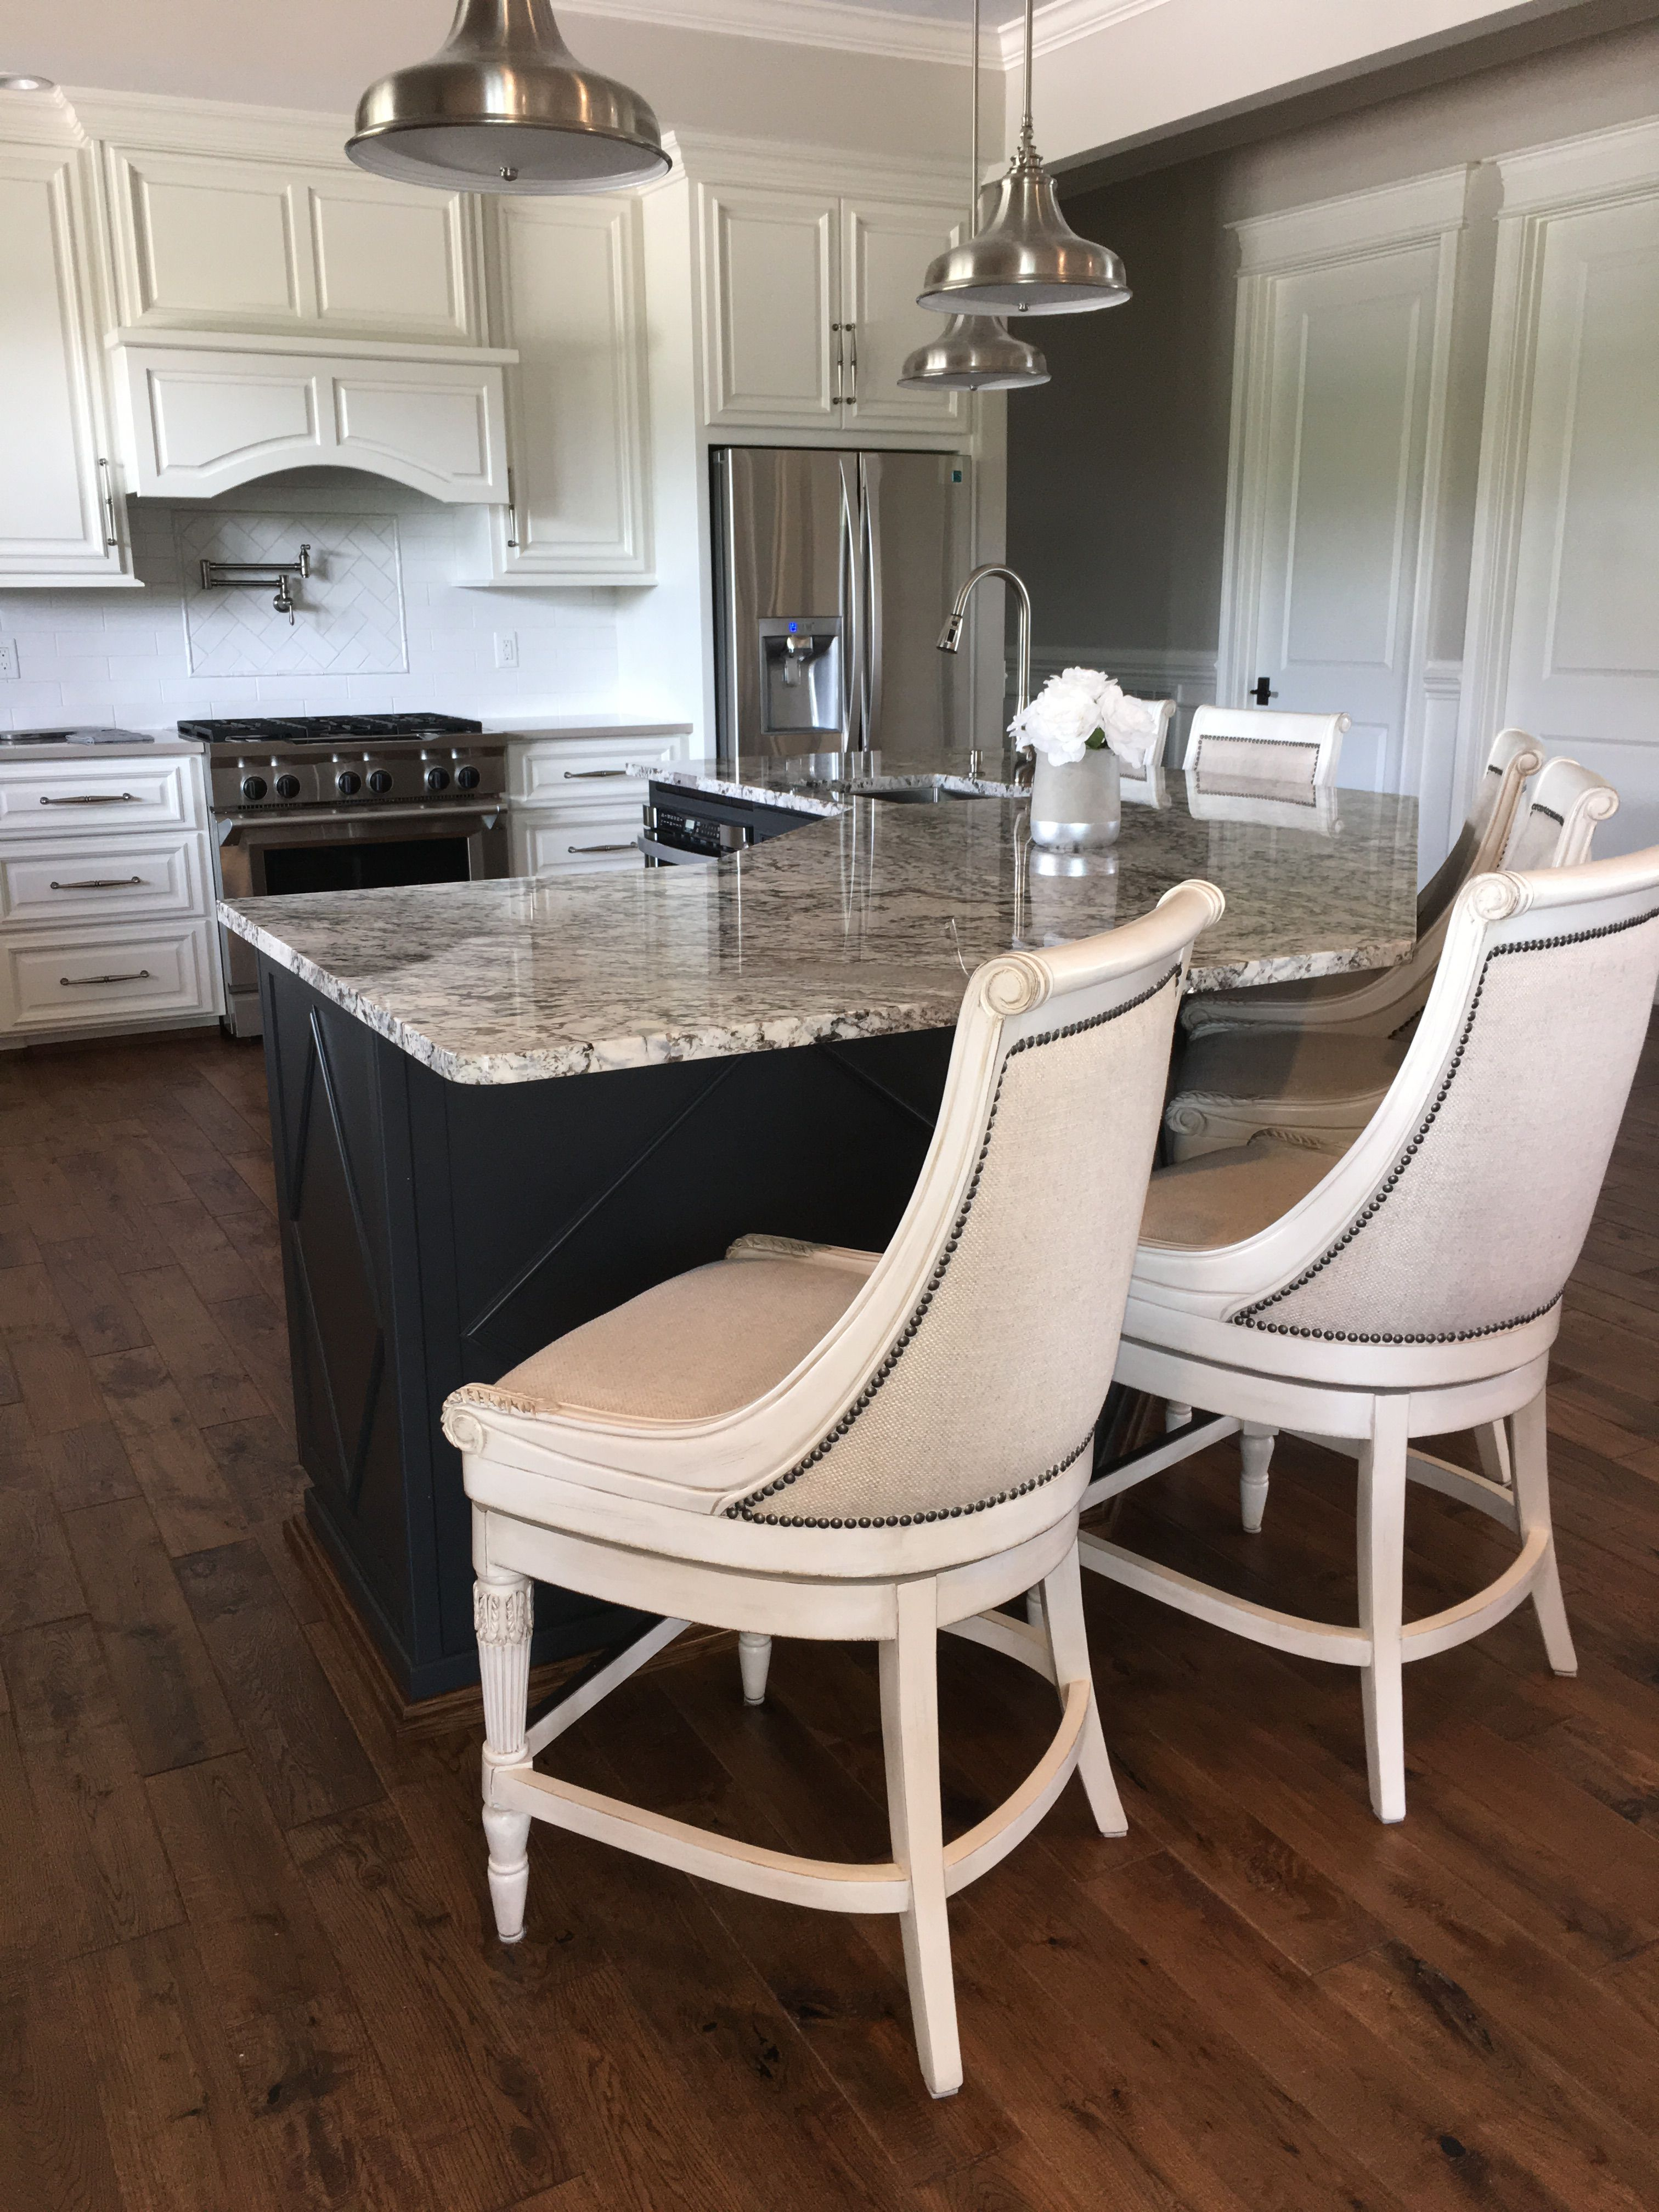 Kent Swivel Counter Stools By Frontgate Island Painted Bm Wrought Iron Granite Is Called Lennon White Cabine White Cabinets With Granite Kitchen Stools Home